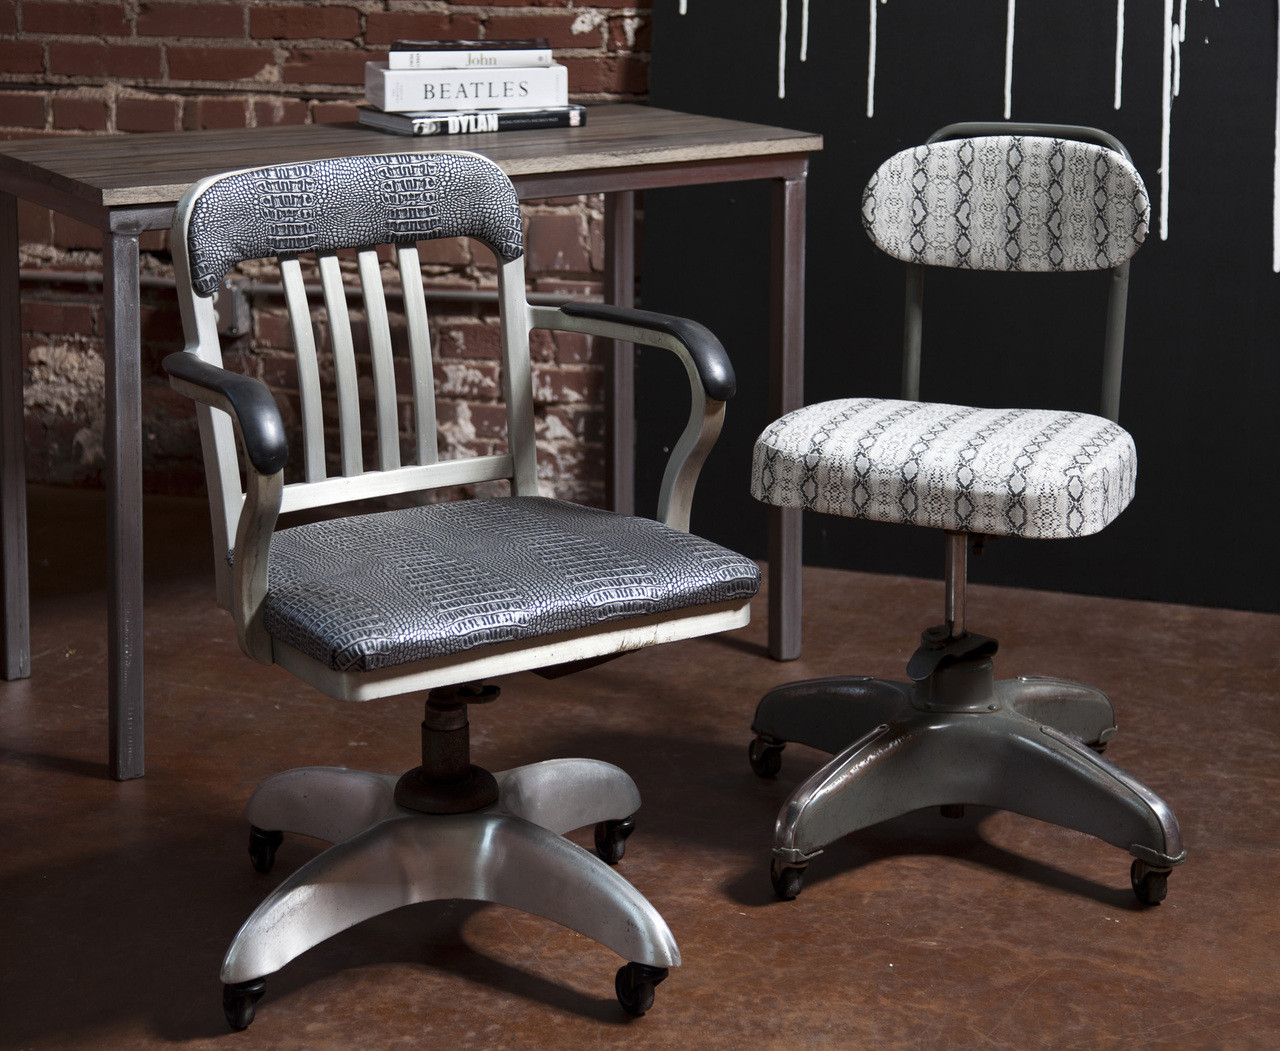 Enjoyable Vintage Industrial Office Chairs Home Interior And Landscaping Dextoversignezvosmurscom